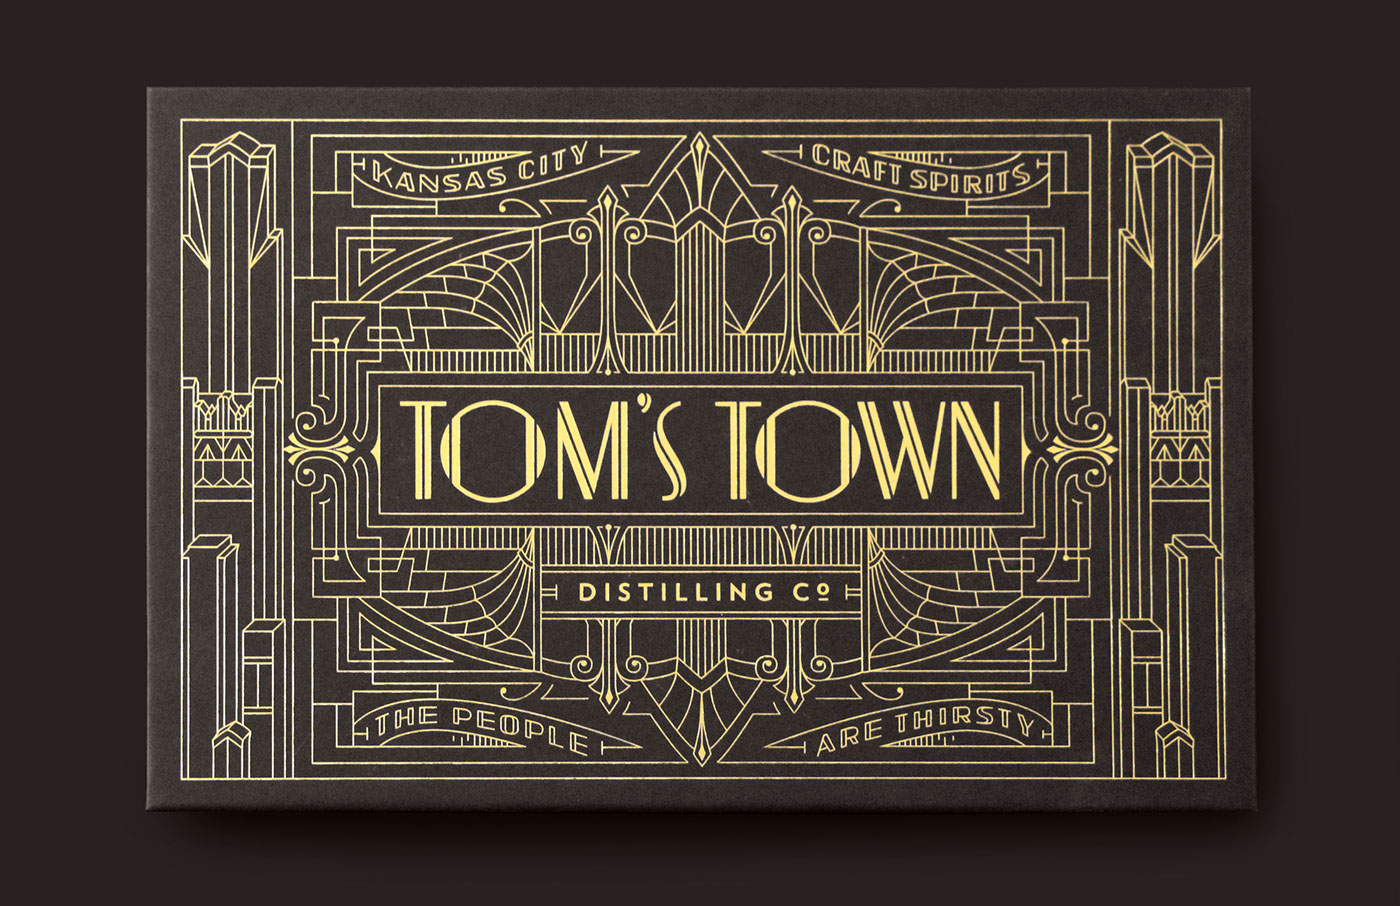 Tom's Town Art Deco Branding